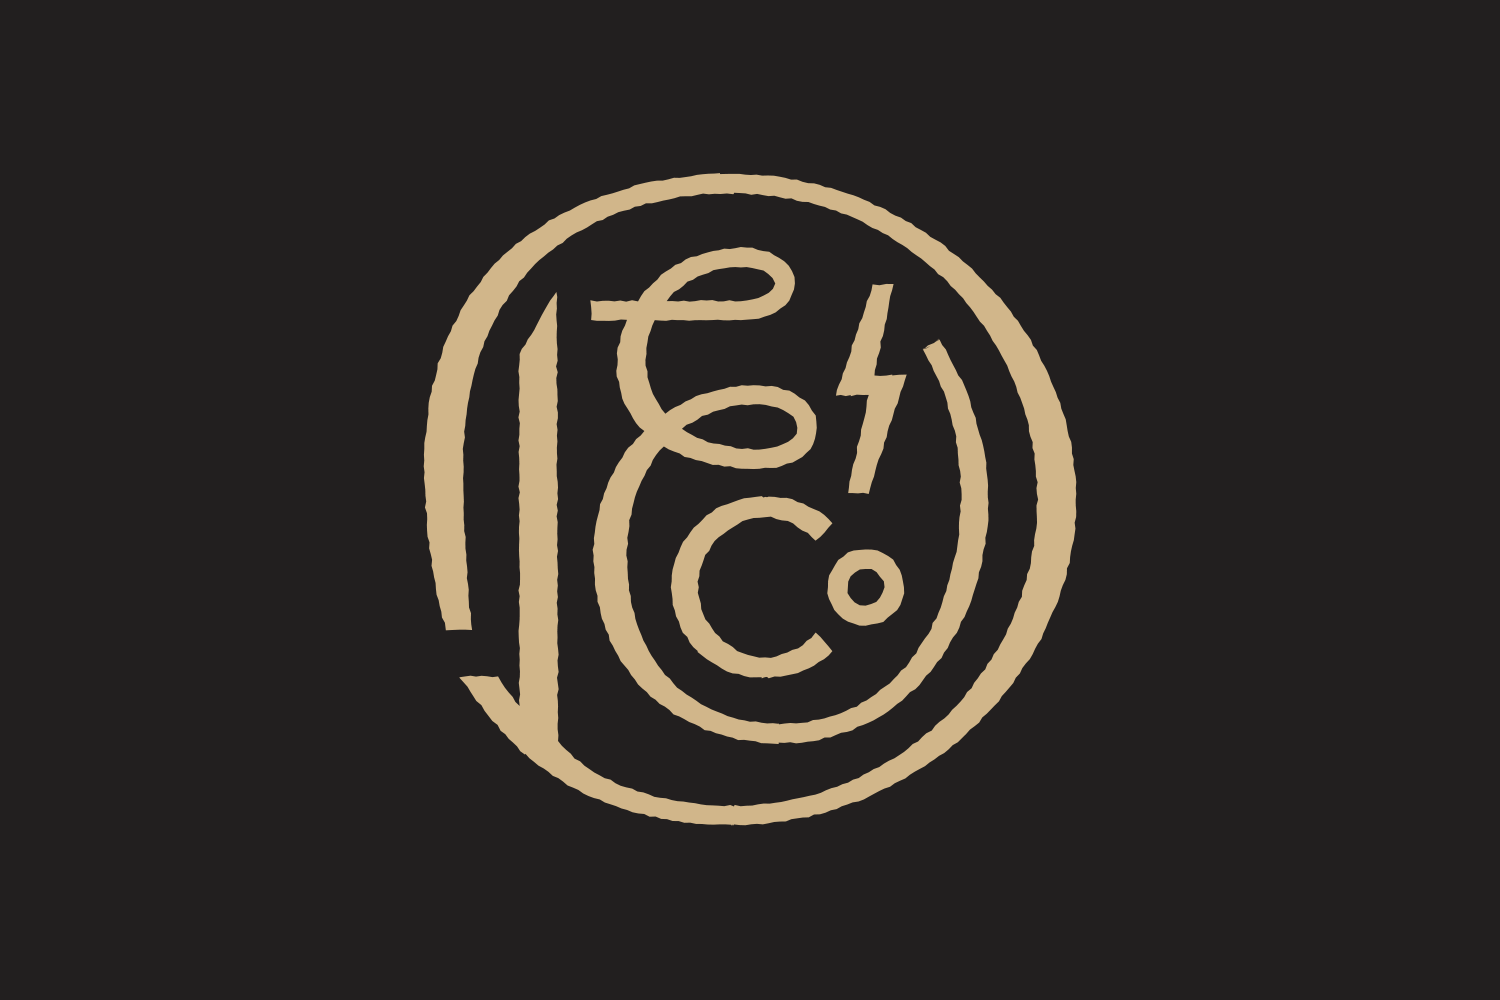 Dimitre_Electric_Co_logo.png